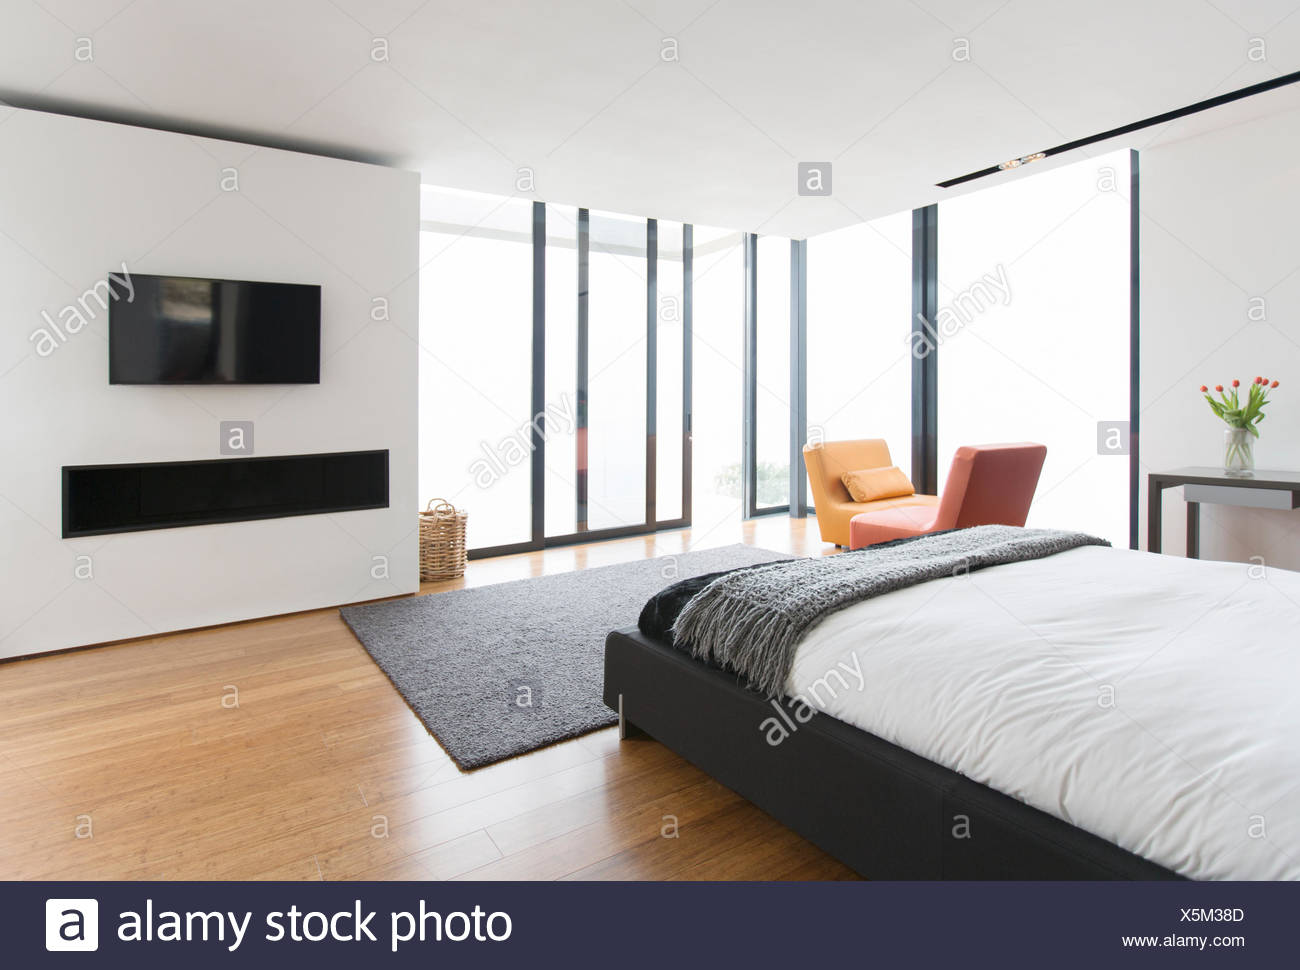 Bed and sliding glass doors in modern bedroom - Stock Image